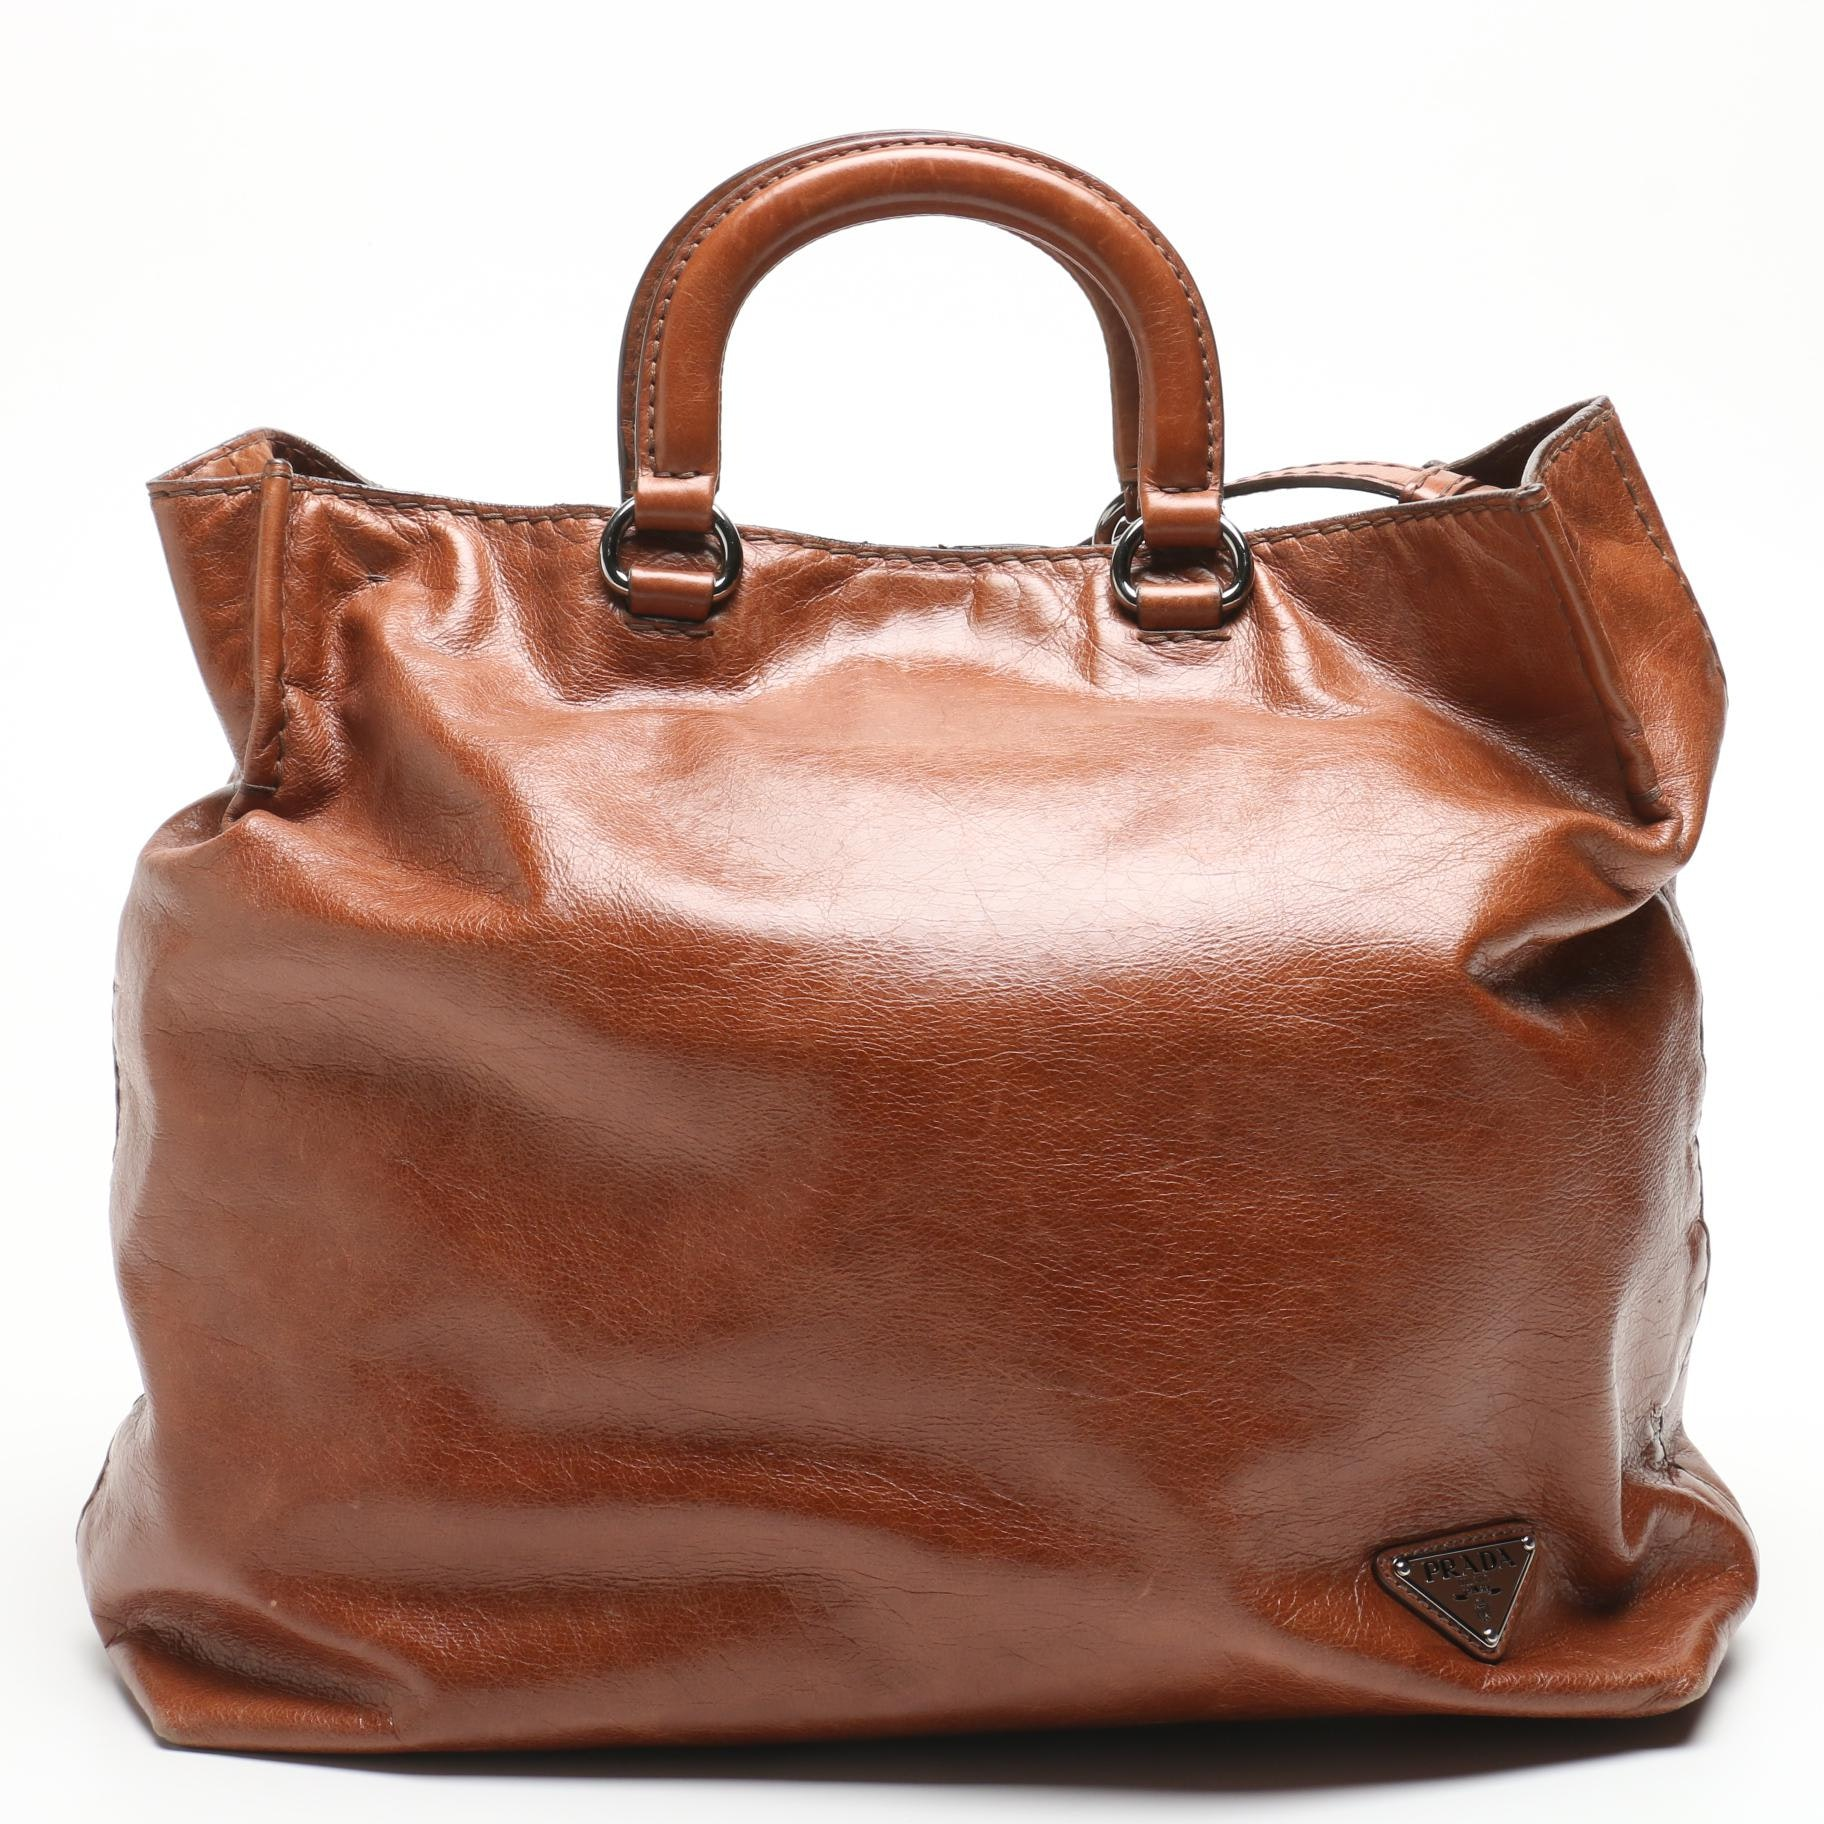 Prada Chestnut Brown Leather Tote Bag